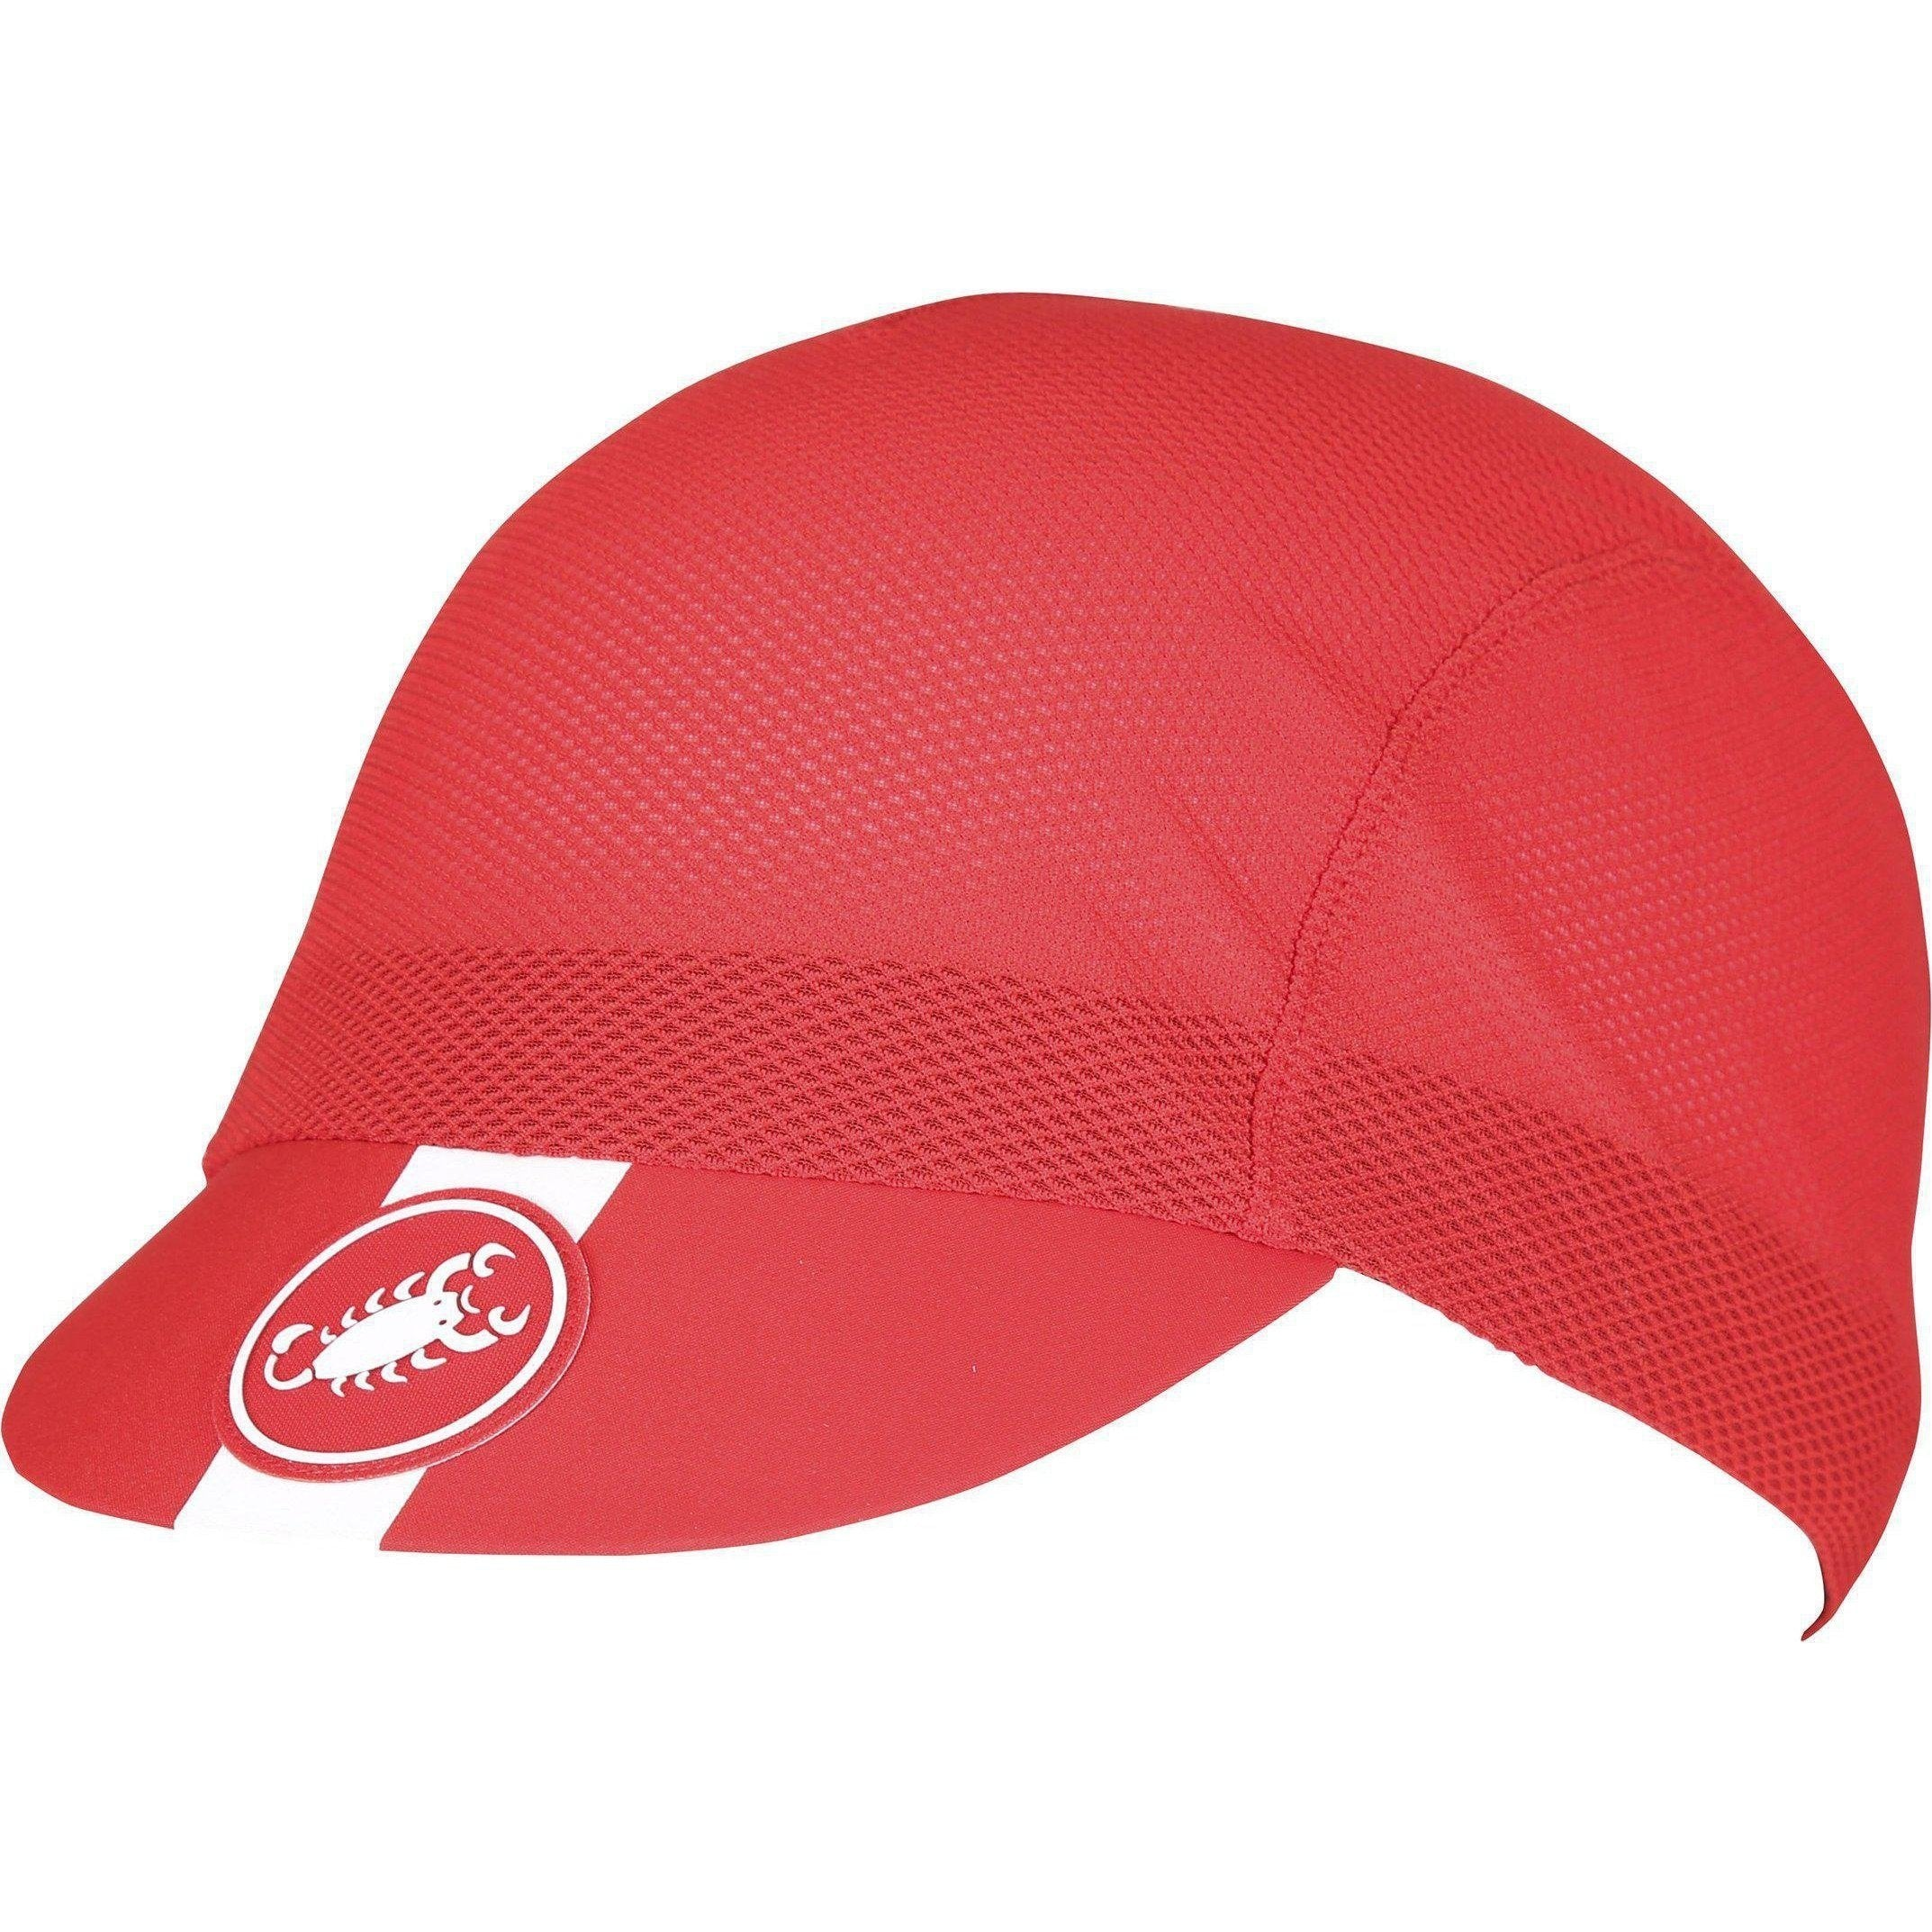 Castelli-Castelli A/C Cycling Cap-Red-Uni-CS180240238-saddleback-elite-performance-cycling